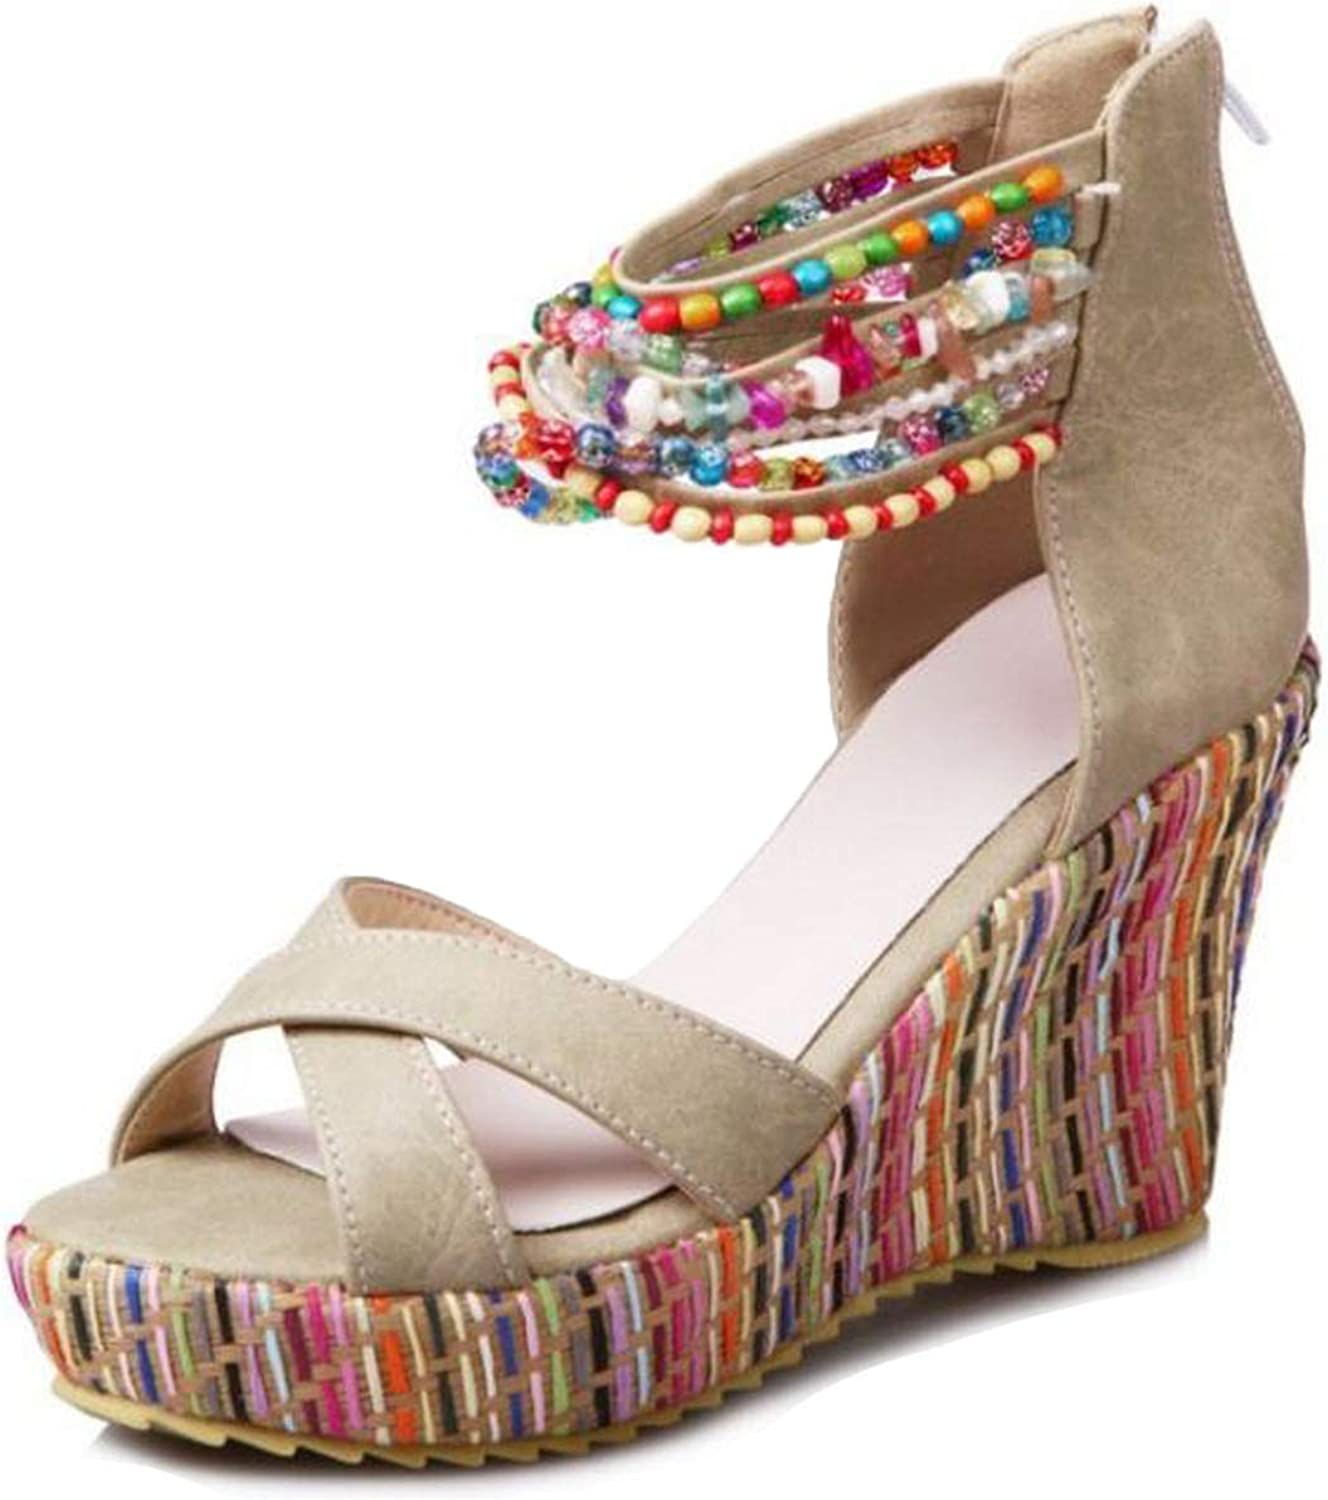 Women High Wedges Sandals Beading Platform Ankle Strap High Wedges Sandals Summer Vacation shoes